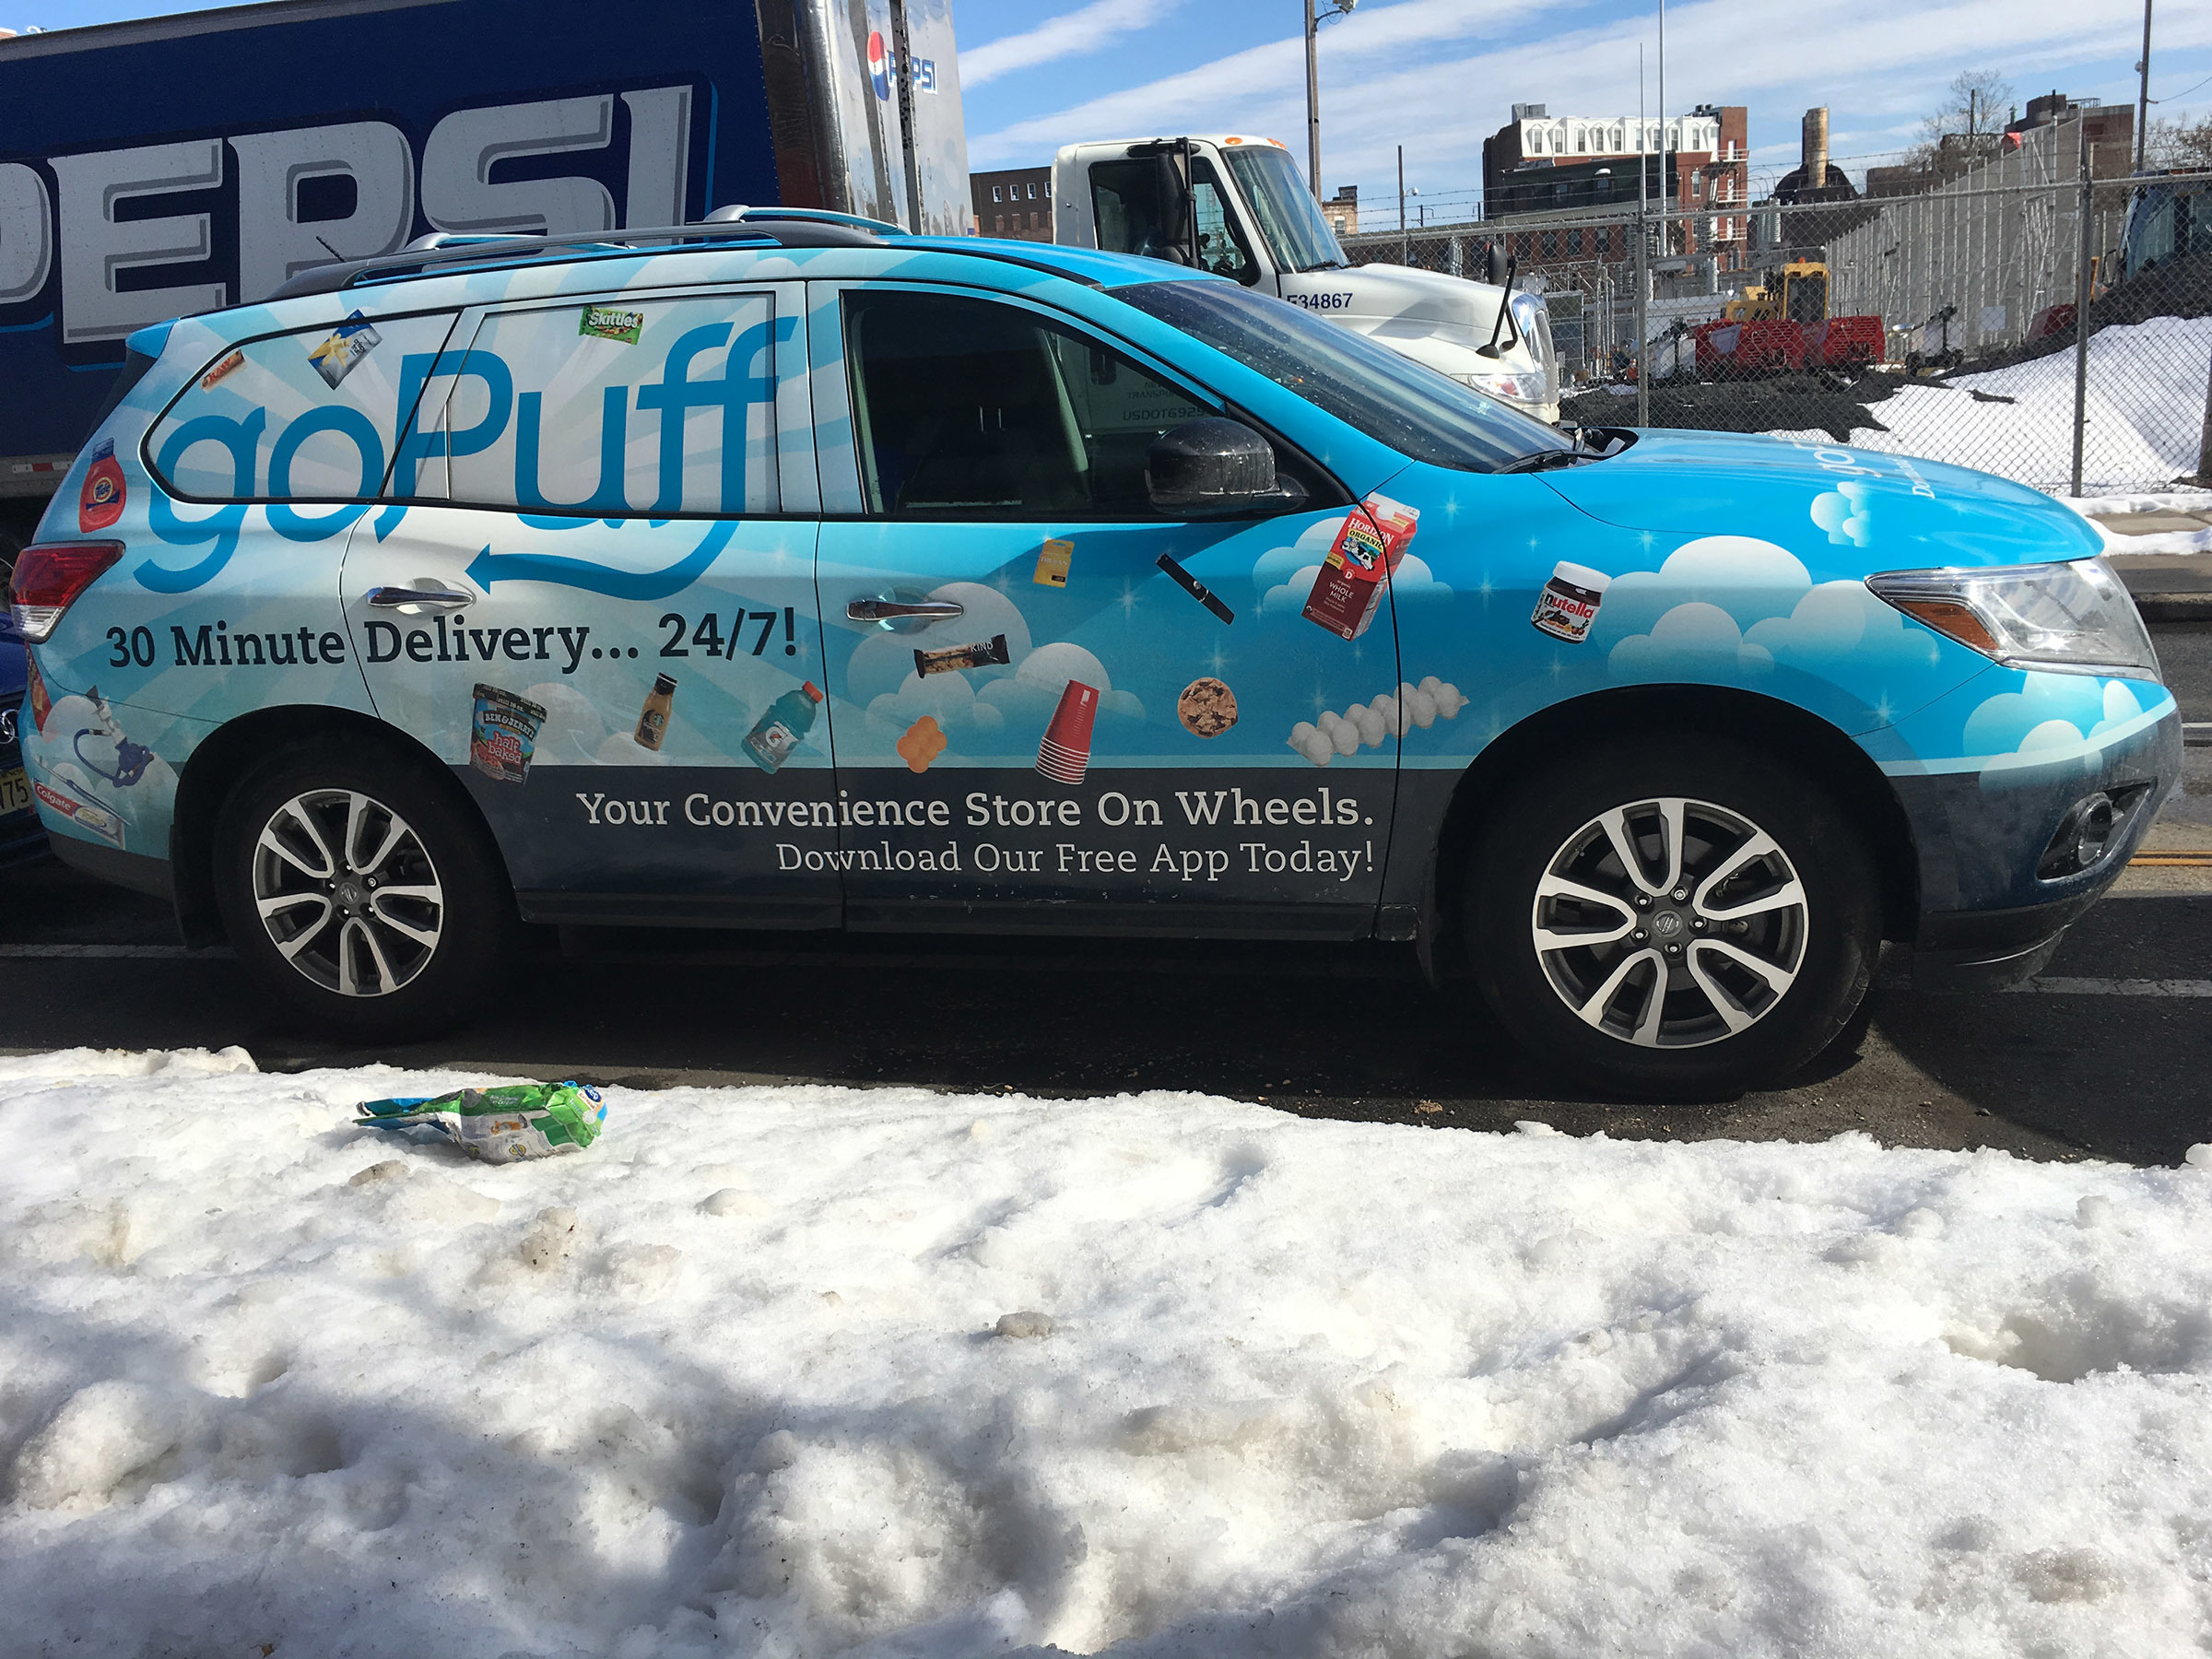 goPuff, the online app-driven delivery service started by two former Drexel students, is expanding its presence to Ardmore and Bethlehem this week.